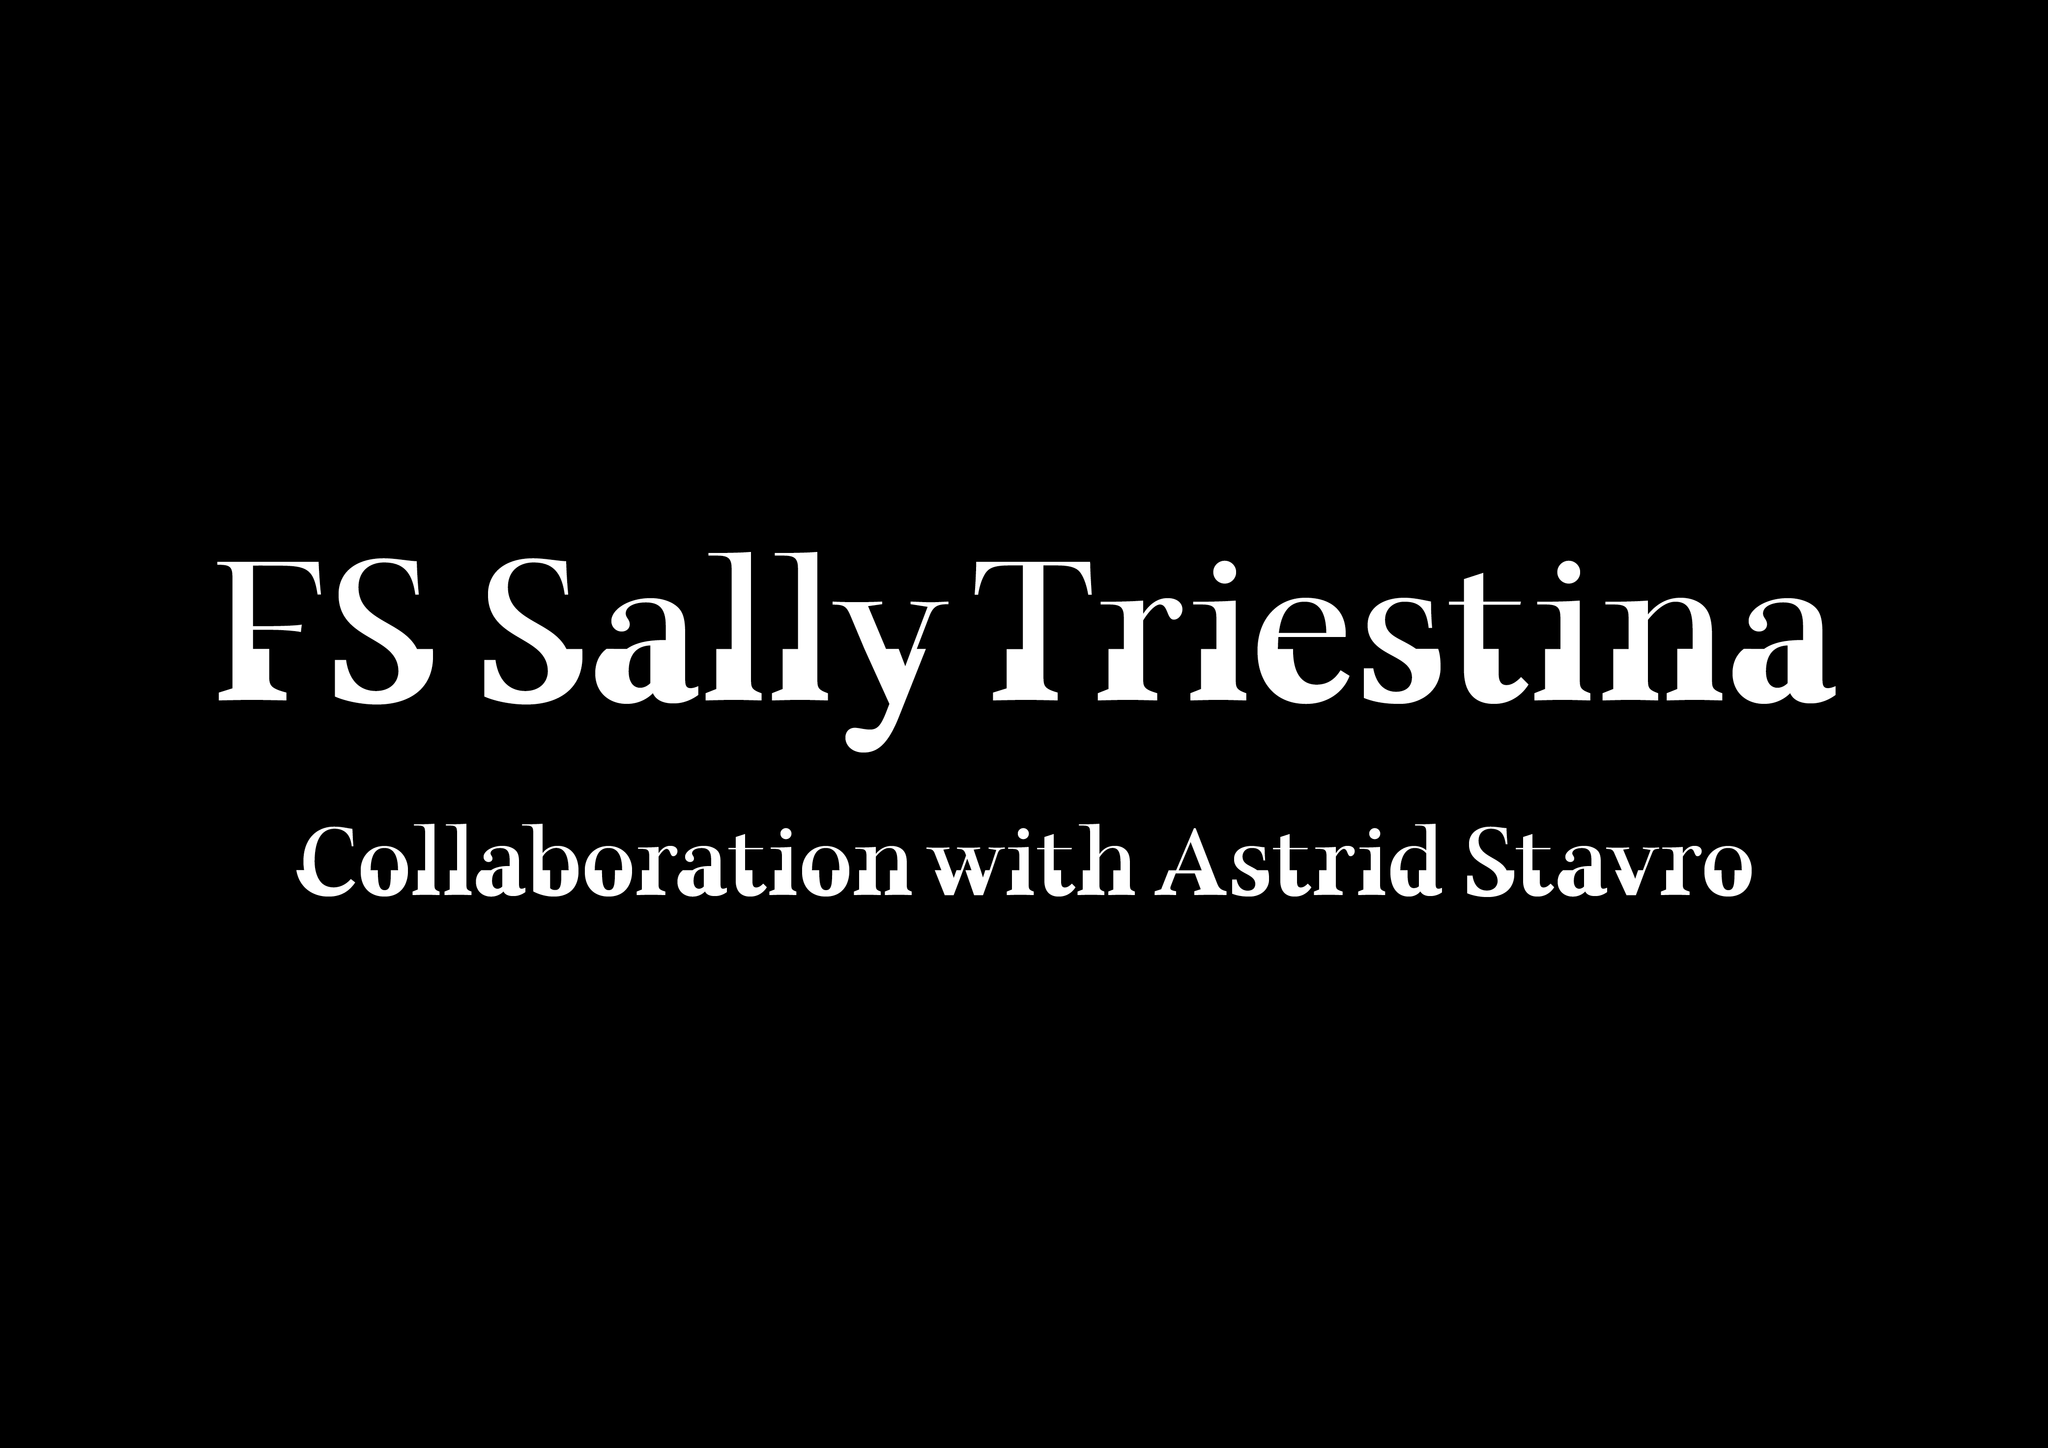 FS Sally Triestina Pack | Font + Limited Edition Poster by Astrid Stavro